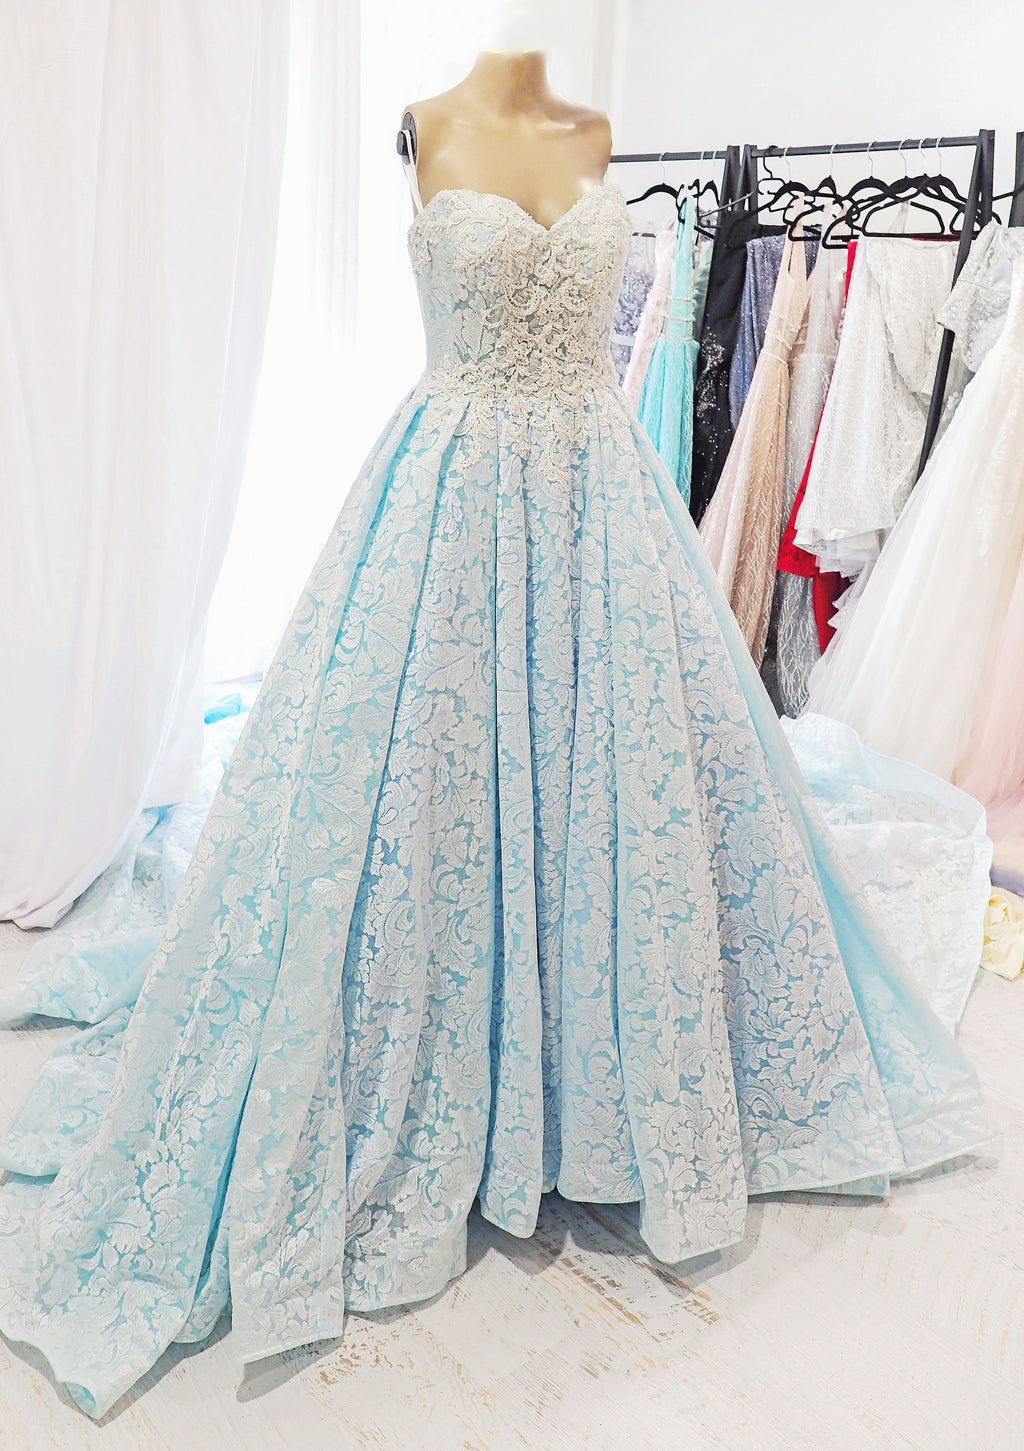 Hera royal ice queen blue wedding